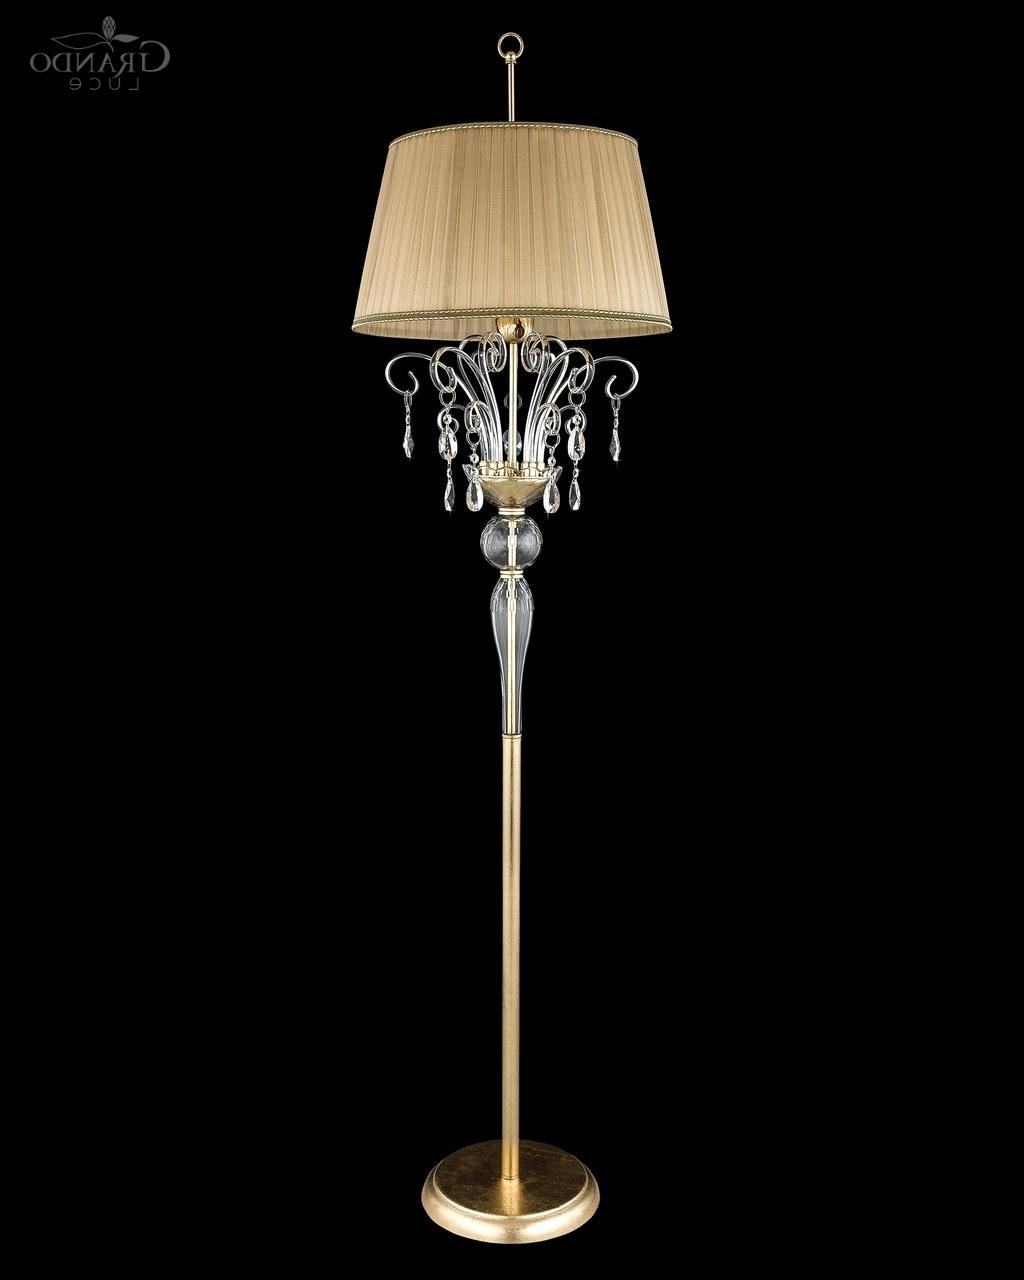 120/fl Gold Leaf Crystal Floor Lamp – Grandoluce With Regard To Current Crystal Chandelier Standing Lamps (Gallery 10 of 20)